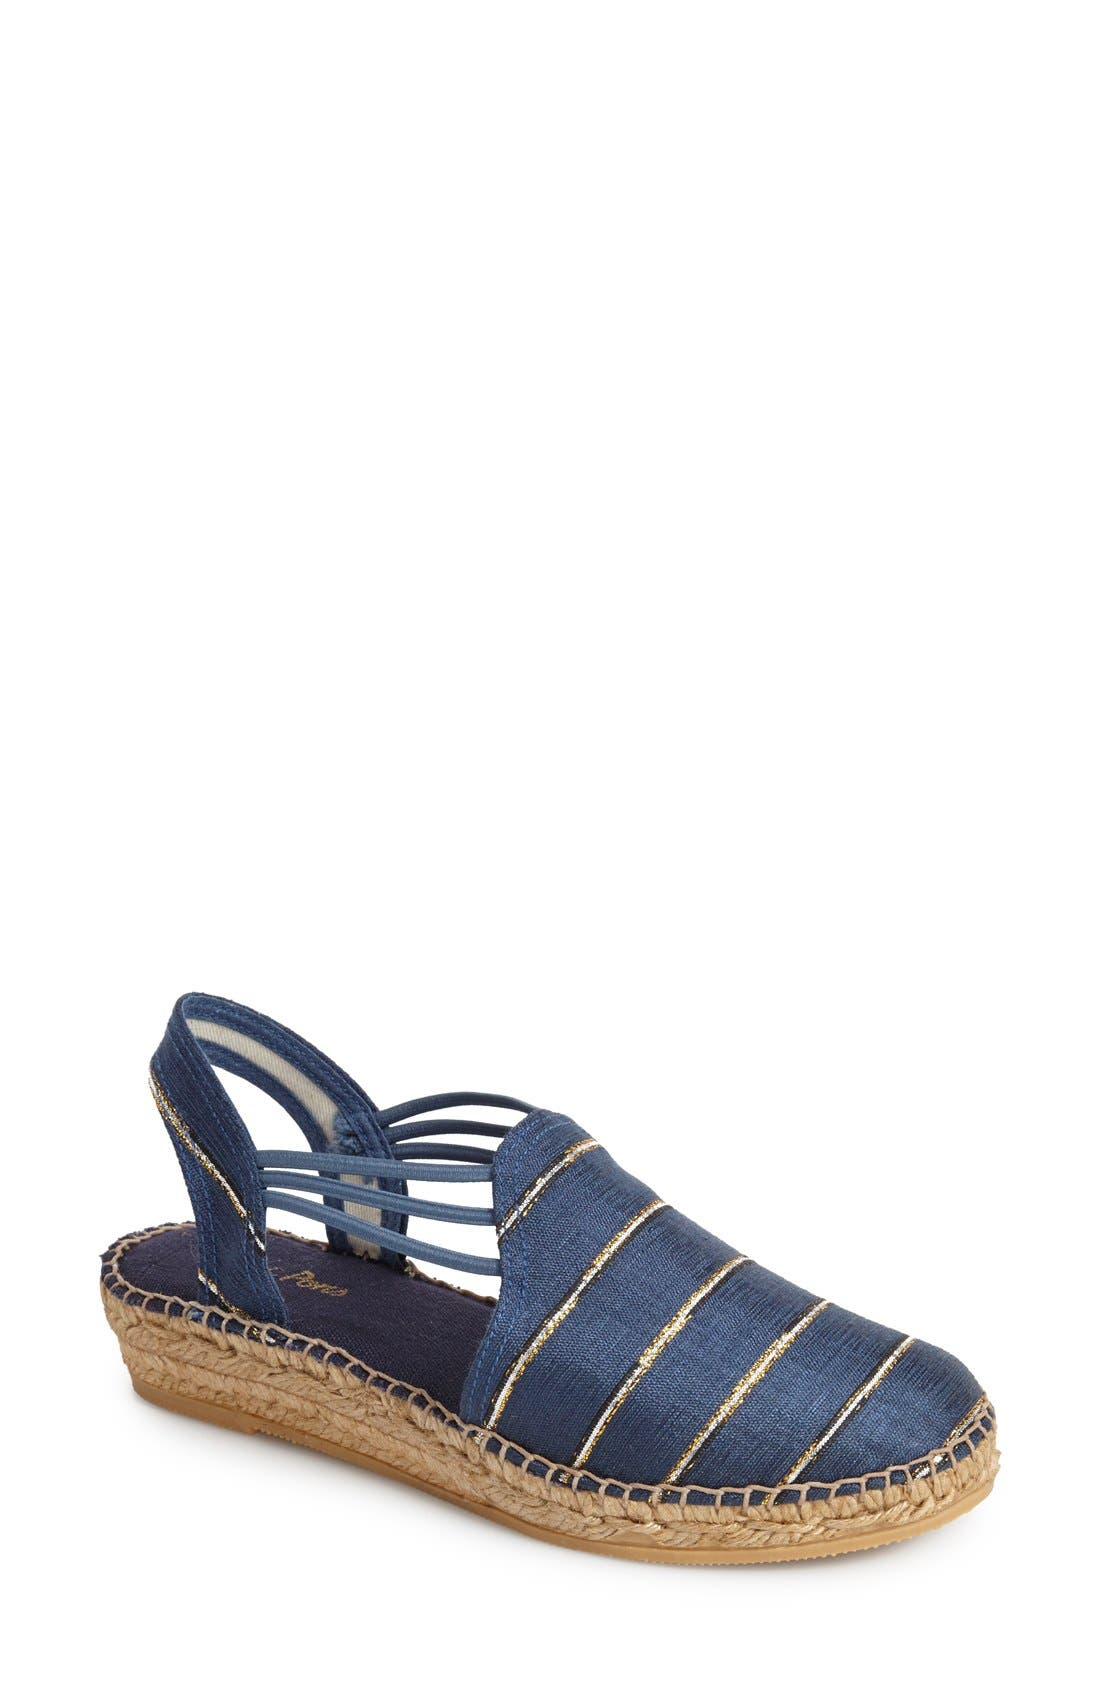 'Nantes' Silk Stripe Sandal,                             Main thumbnail 1, color,                             Stripe Navy